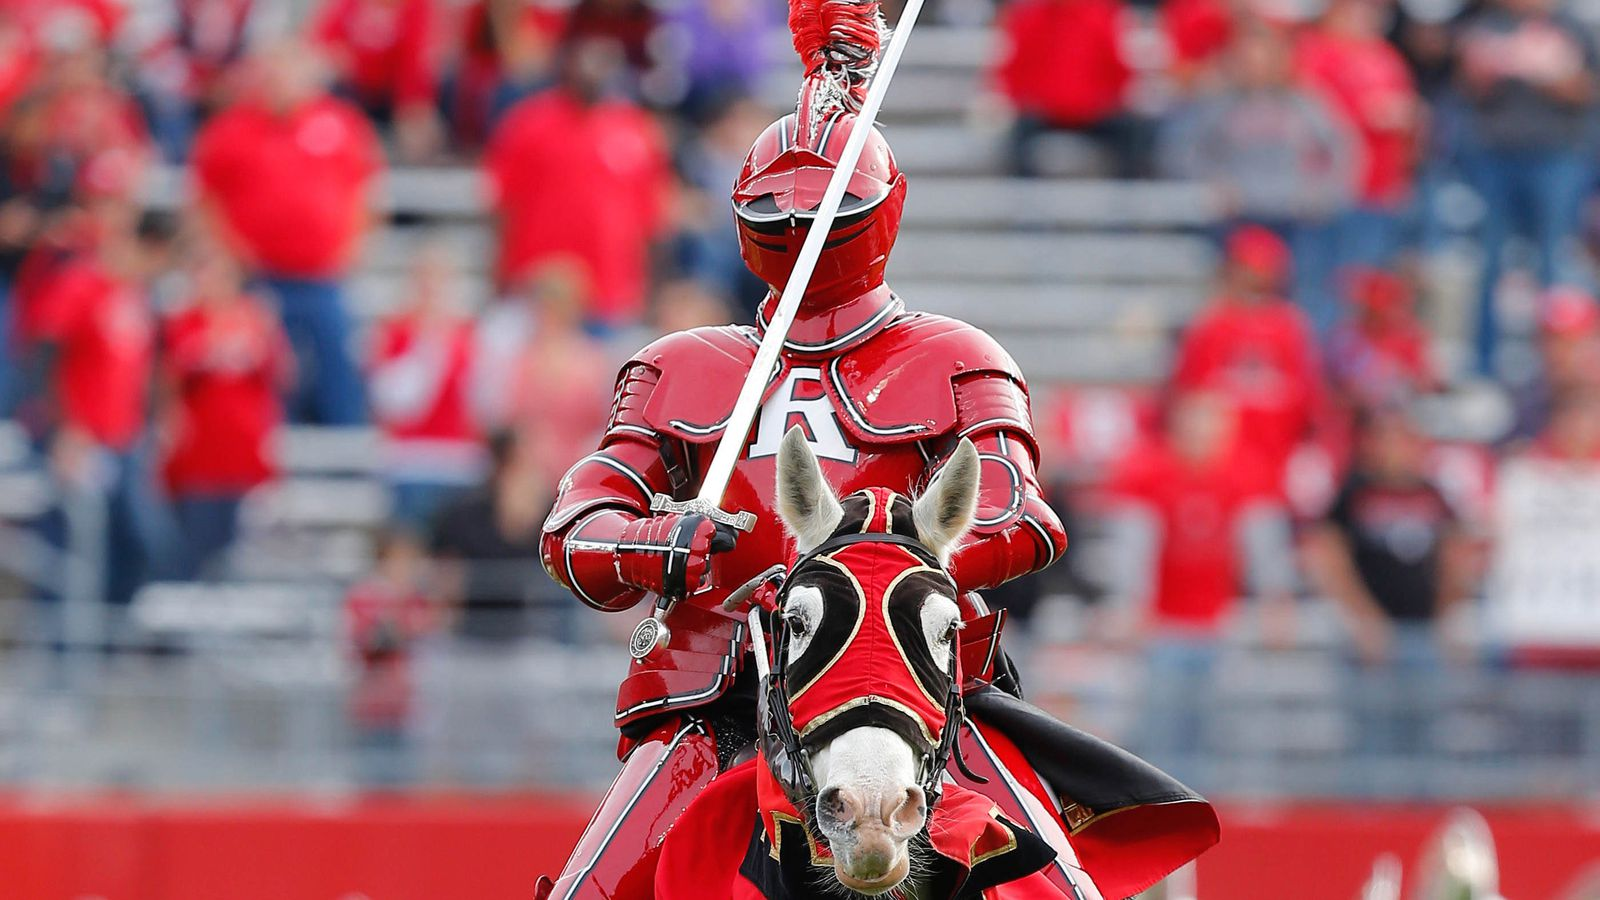 A New Face for Rutgers Athletics - On the Banks